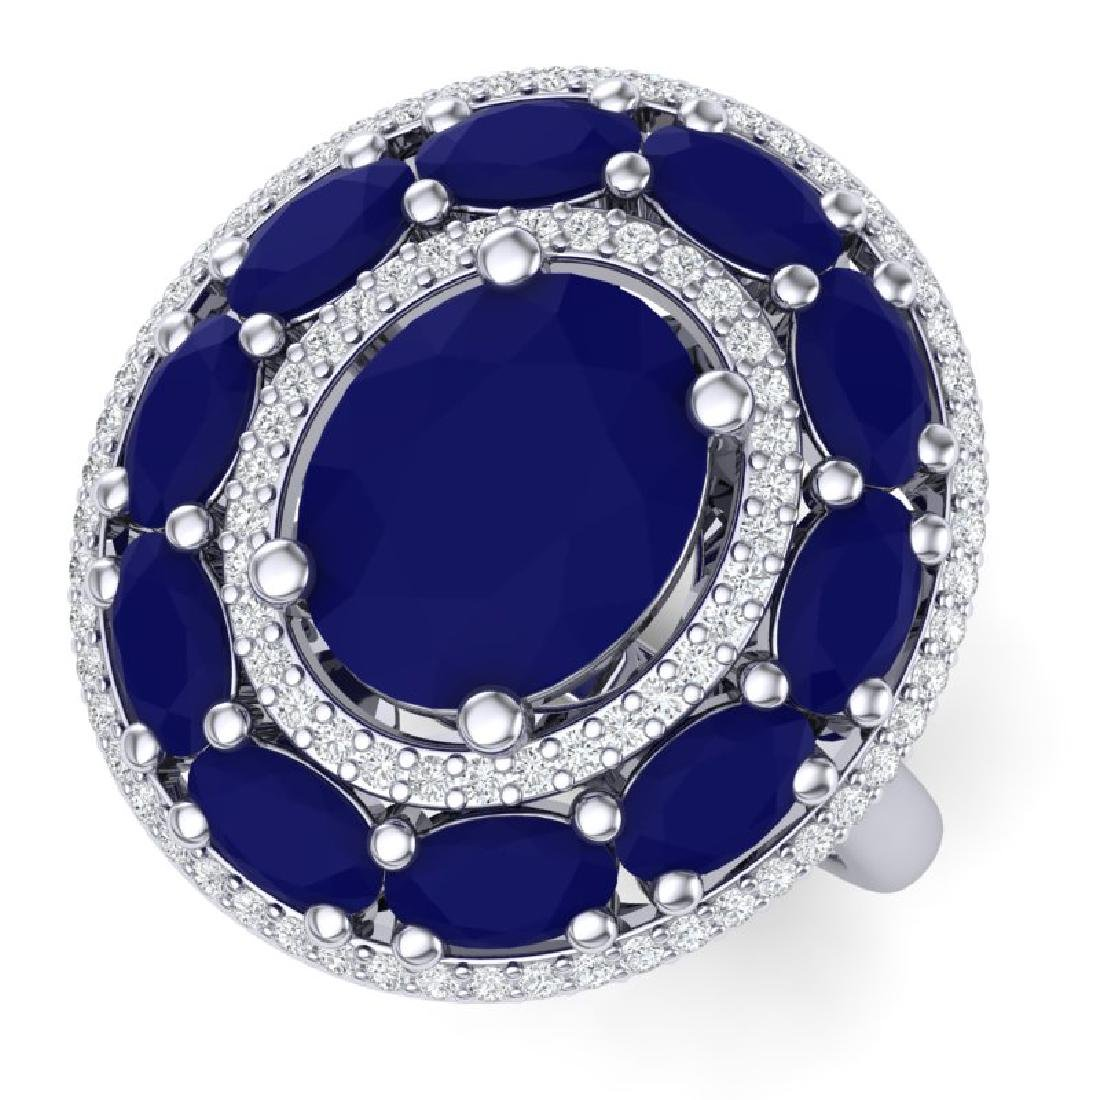 8.05 CTW Royalty Designer Sapphire & VS Diamond Ring